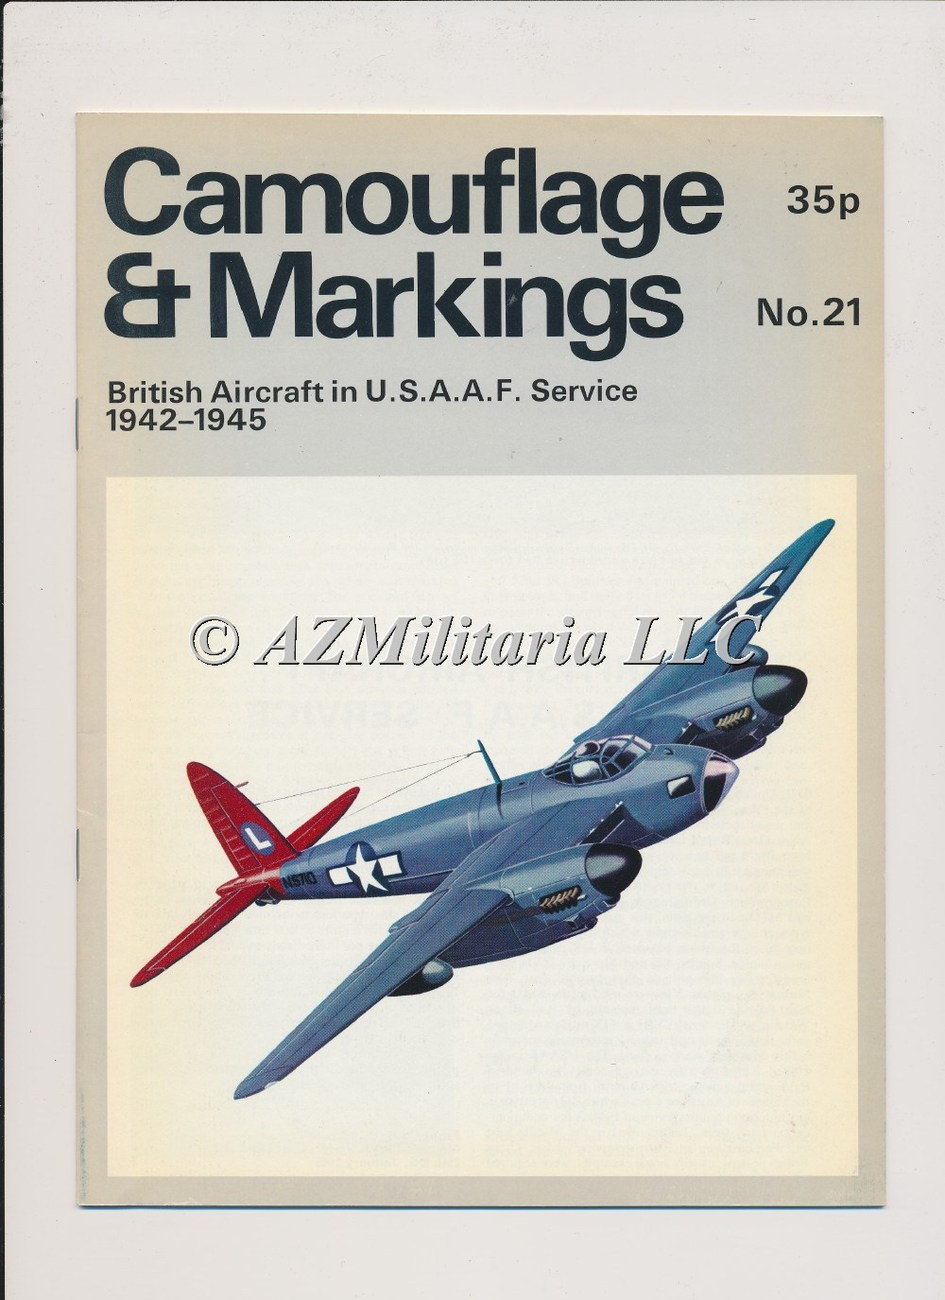 Camouflage & Markings Number 21 British Aircraft in USAAF Service 1942-1945